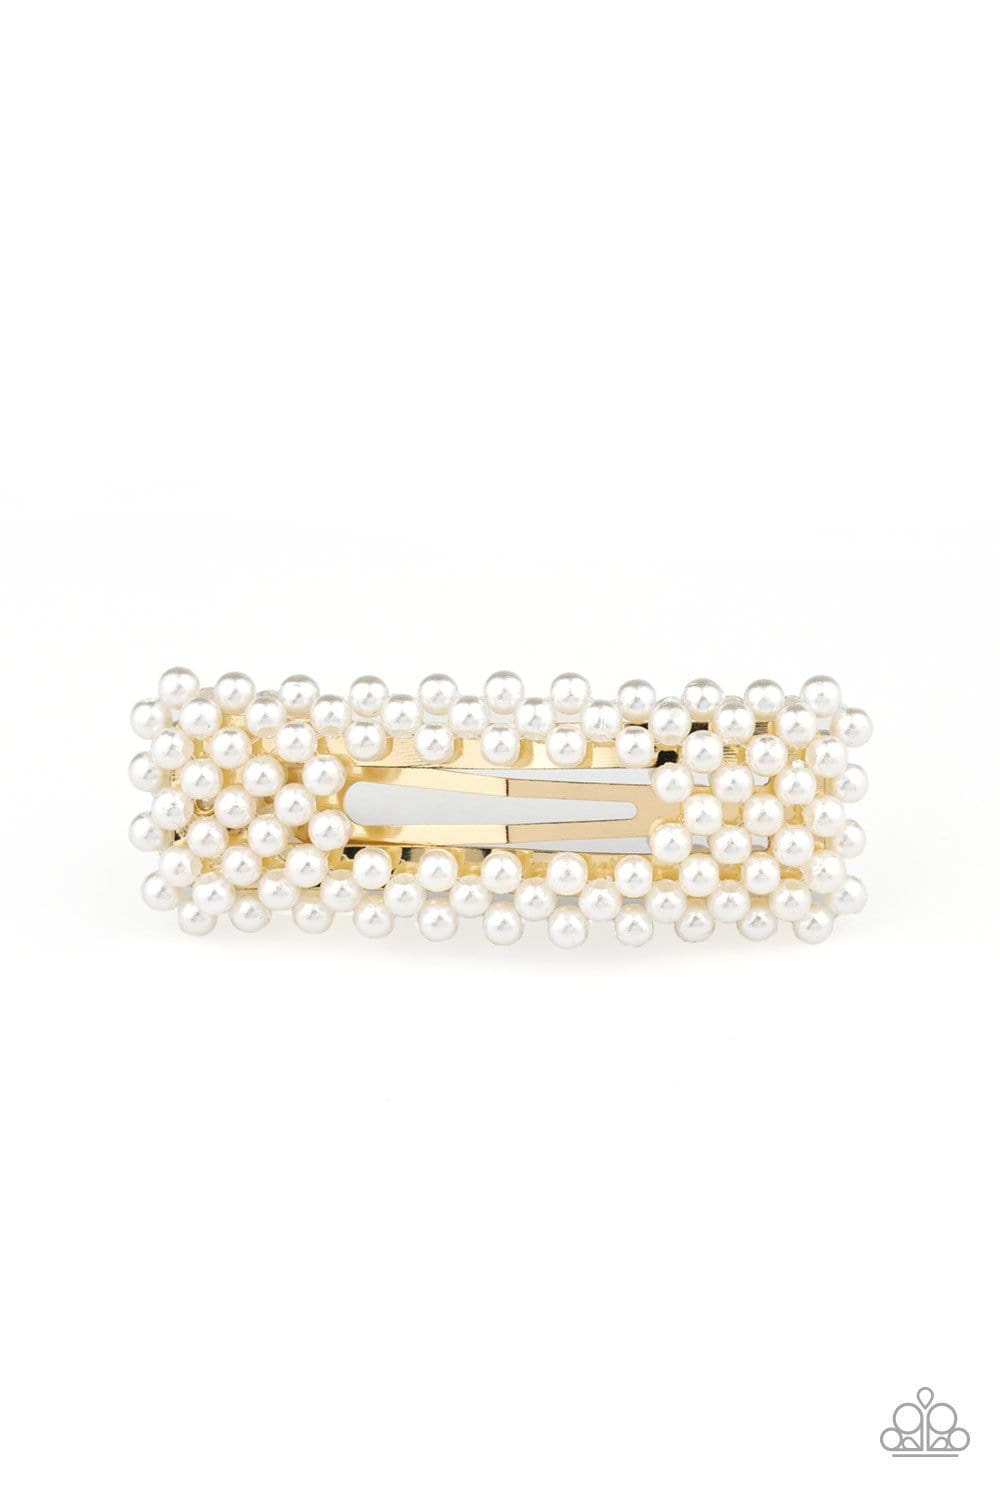 Clutch Your Pearls - Gold Barrette: Paparazzi - Jewels N' Thingz Boutique